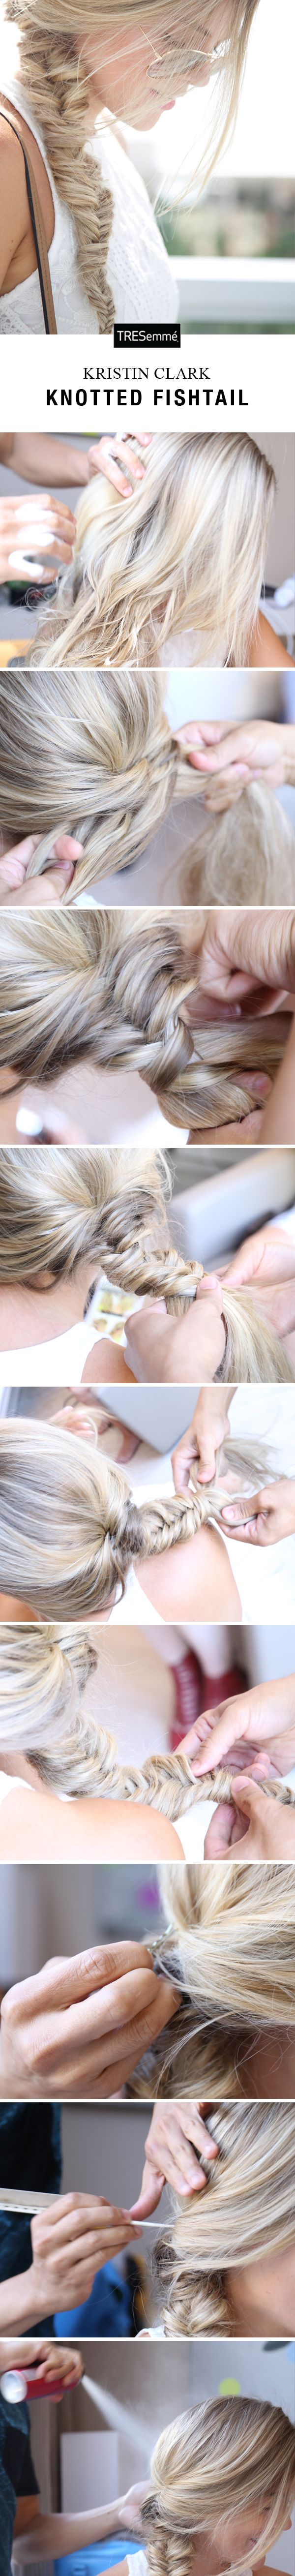 Blogger Kristin Clark hit up Miami Swim & teamed up with TRESemmé to create summery 'dos for breezy outfits & Miami heat. Try her knotted, boho twist on a fishtail: Start with TRES Perfectly (un)Done Sea Foam to create texture. Fishtail from the nape, stopping once or twice to wrap a section of hair around the braid. Secure the ends. Tug the braid to widen and pin any shorter layers back loosely. Finish with TRES Keratin Smooth Frizz-Free Hairspray for flyaway-free, summery shine.